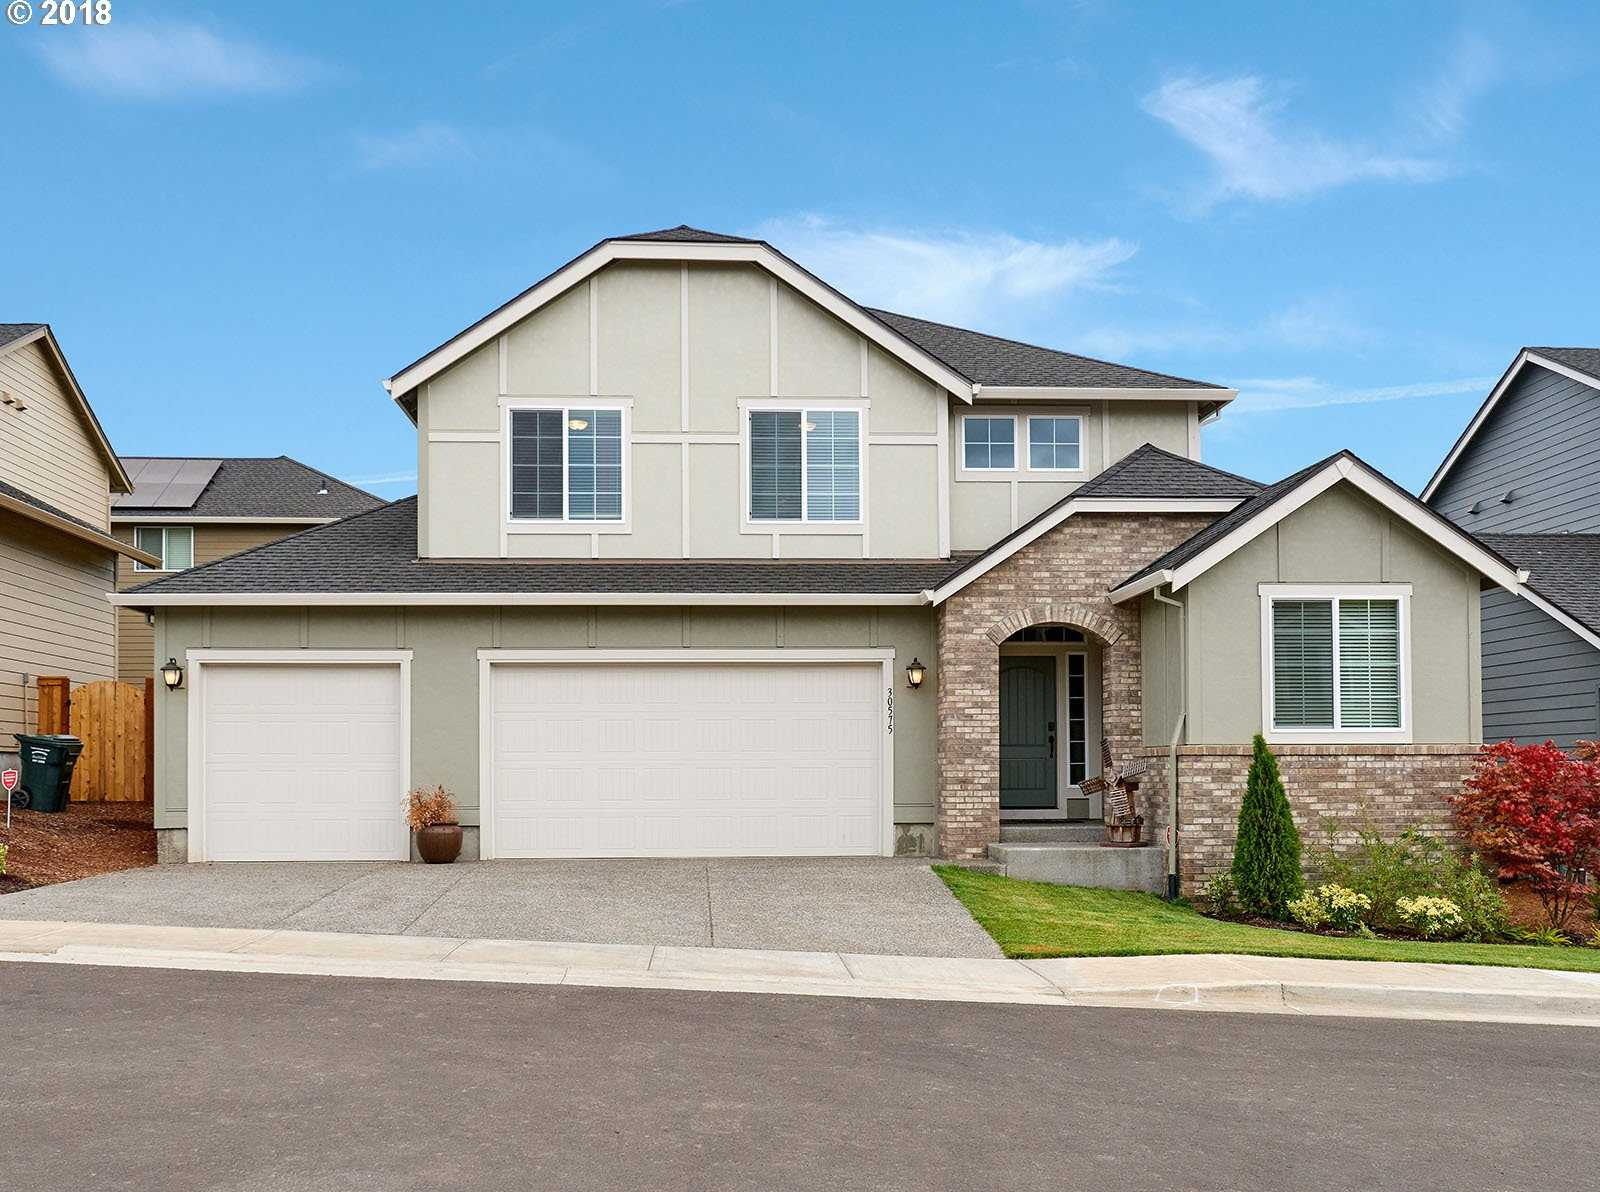 $490,000 - 4Br/3Ba -  for Sale in Kemmer Meadows, North Plains